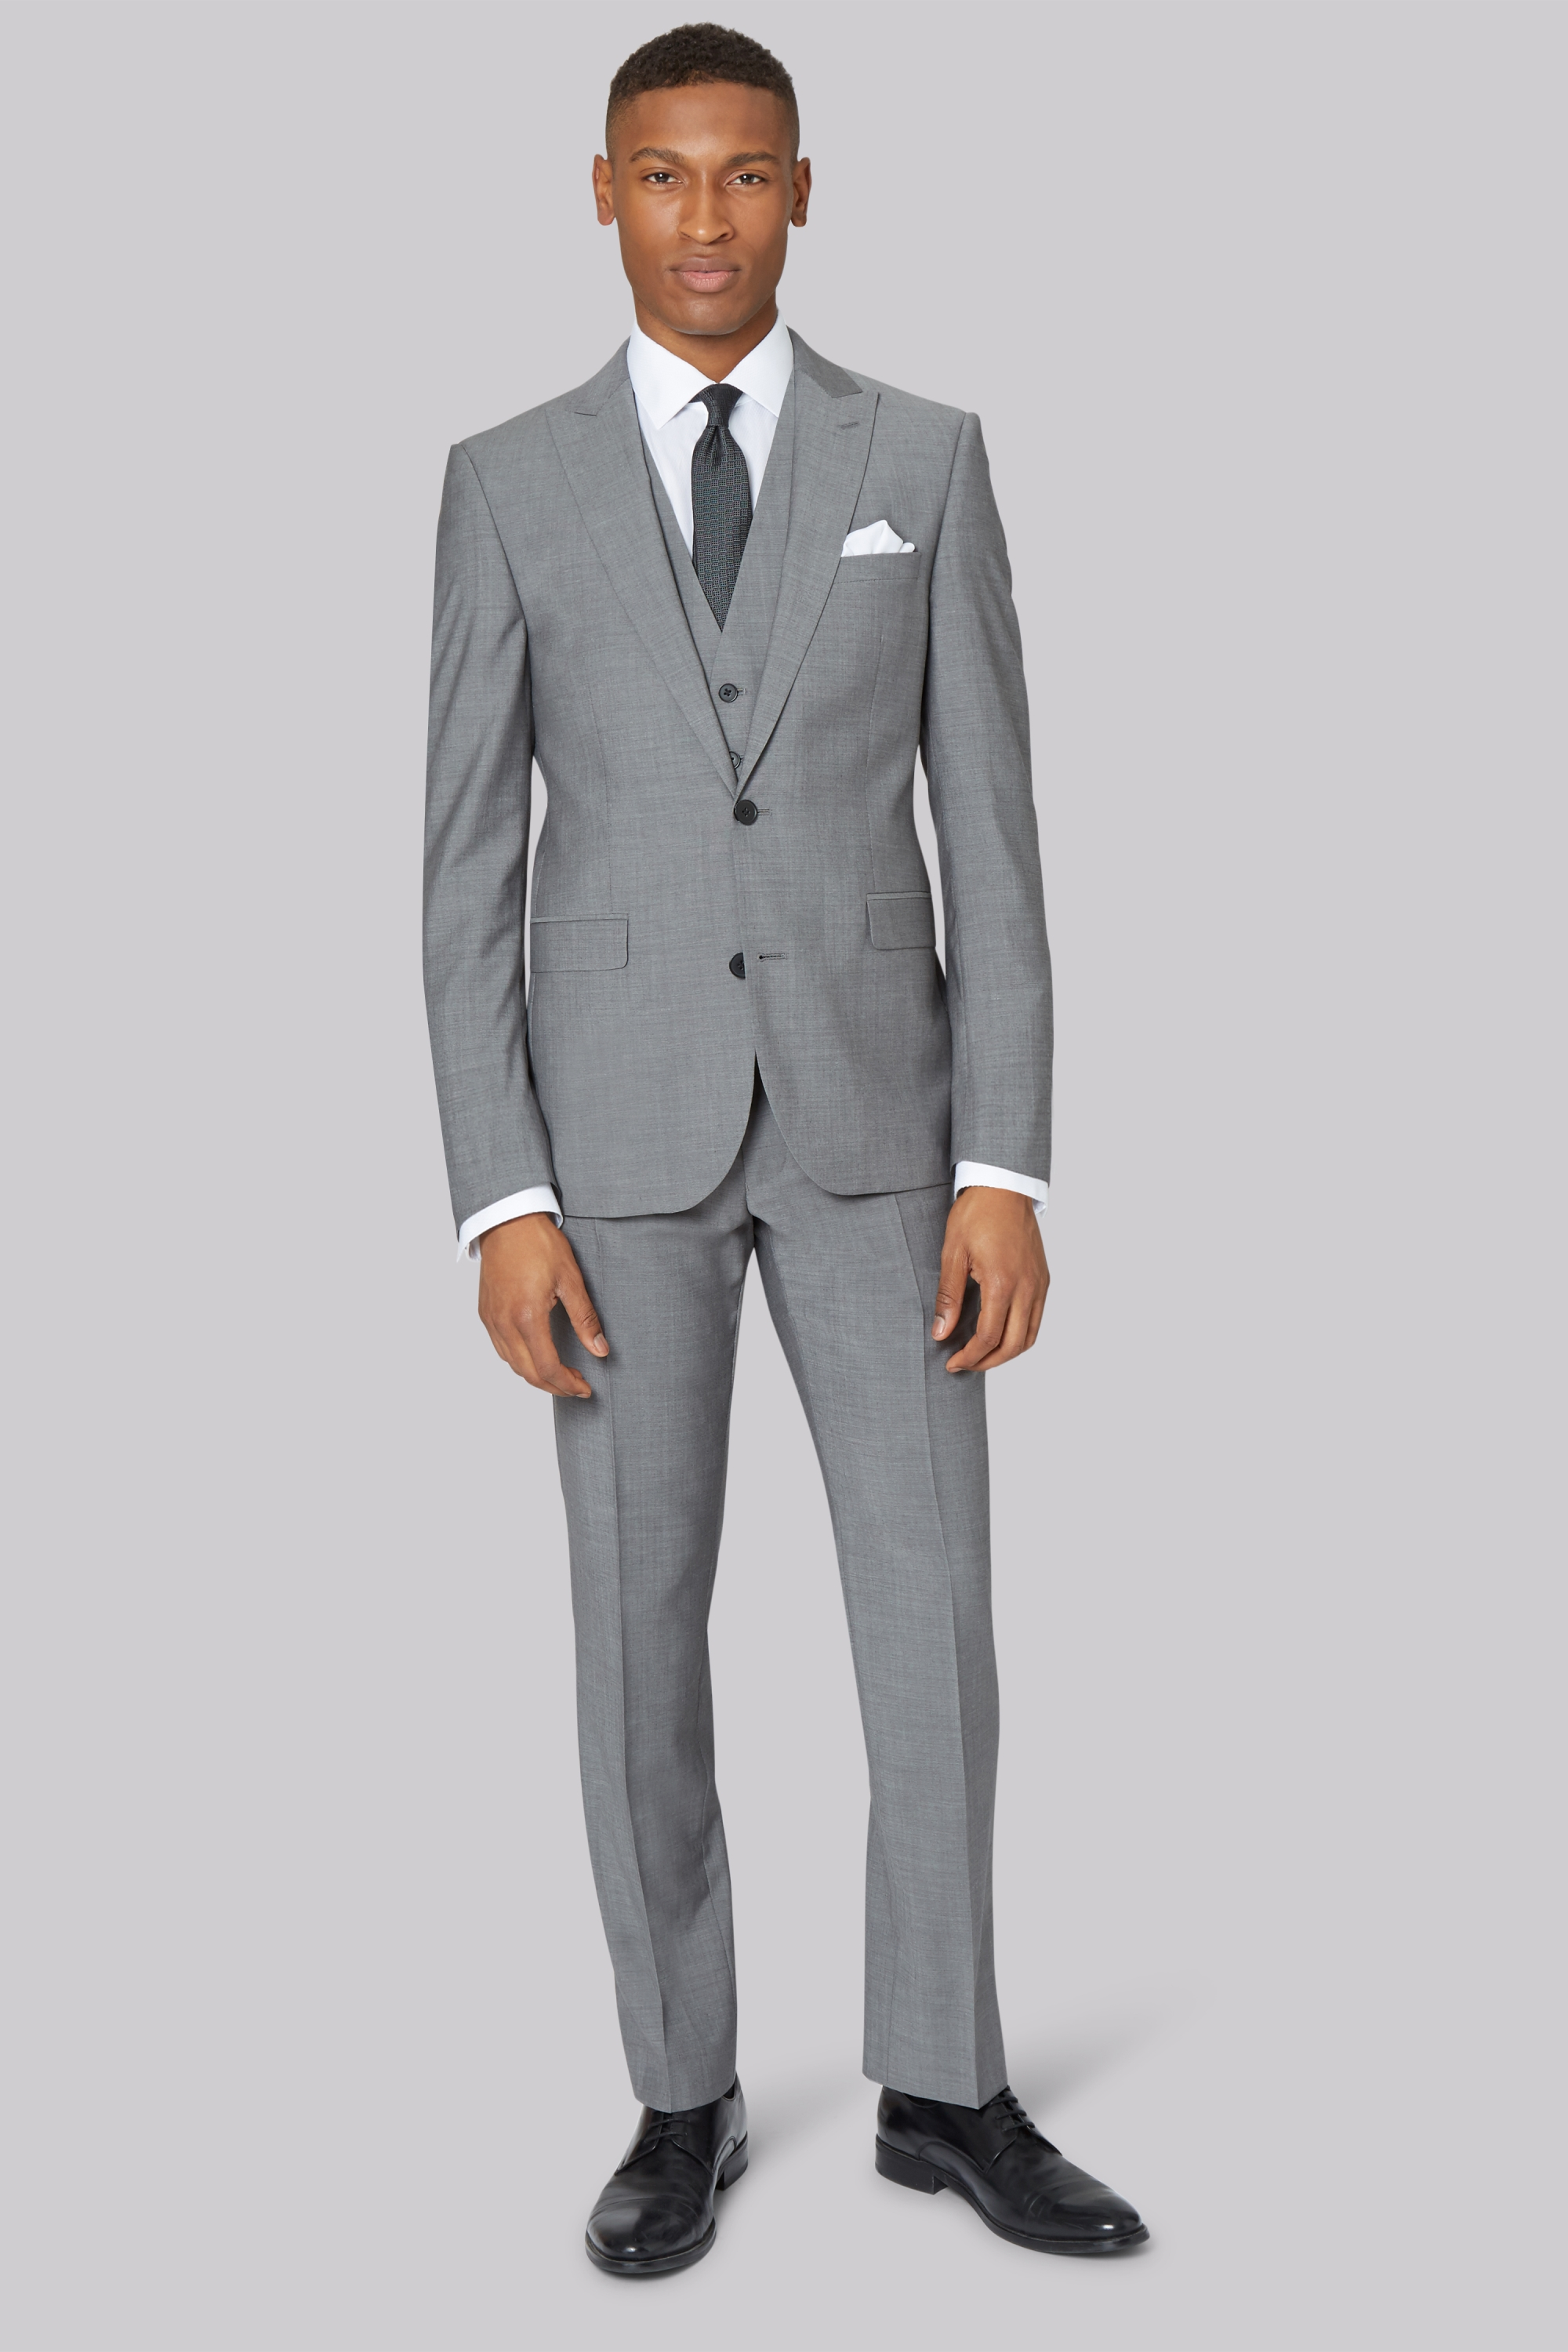 Find great deals on eBay for Grey Slim Fit Suit in Suits for Men. Shop with confidence.